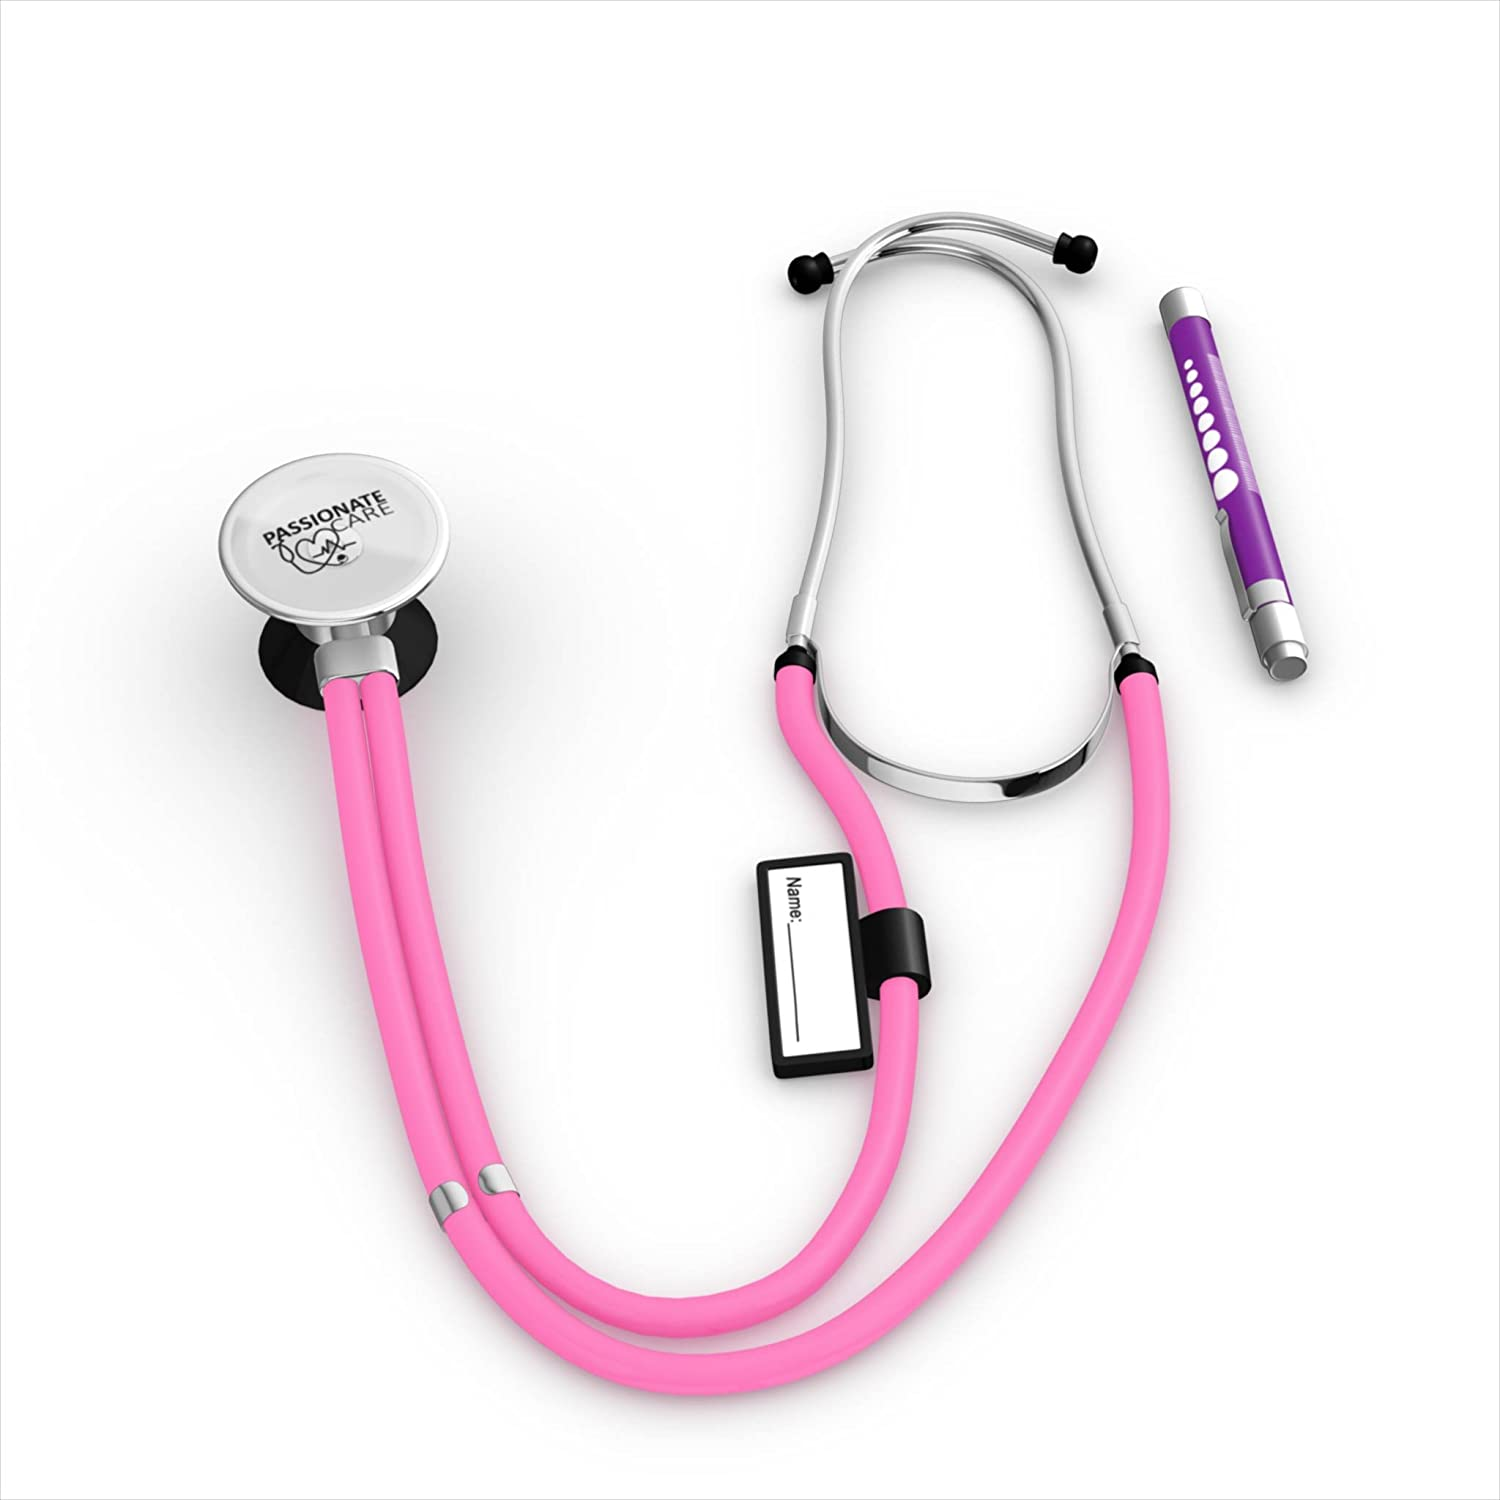 The Rosey The Dual Head Pink Stethoscope Kit That Helps You Feel Good About The Care You give. It s Who You Are. W Upgraded Soft Ear Tips For Comfort, Name Tag, Parts, Pen Light, Double Tubing.